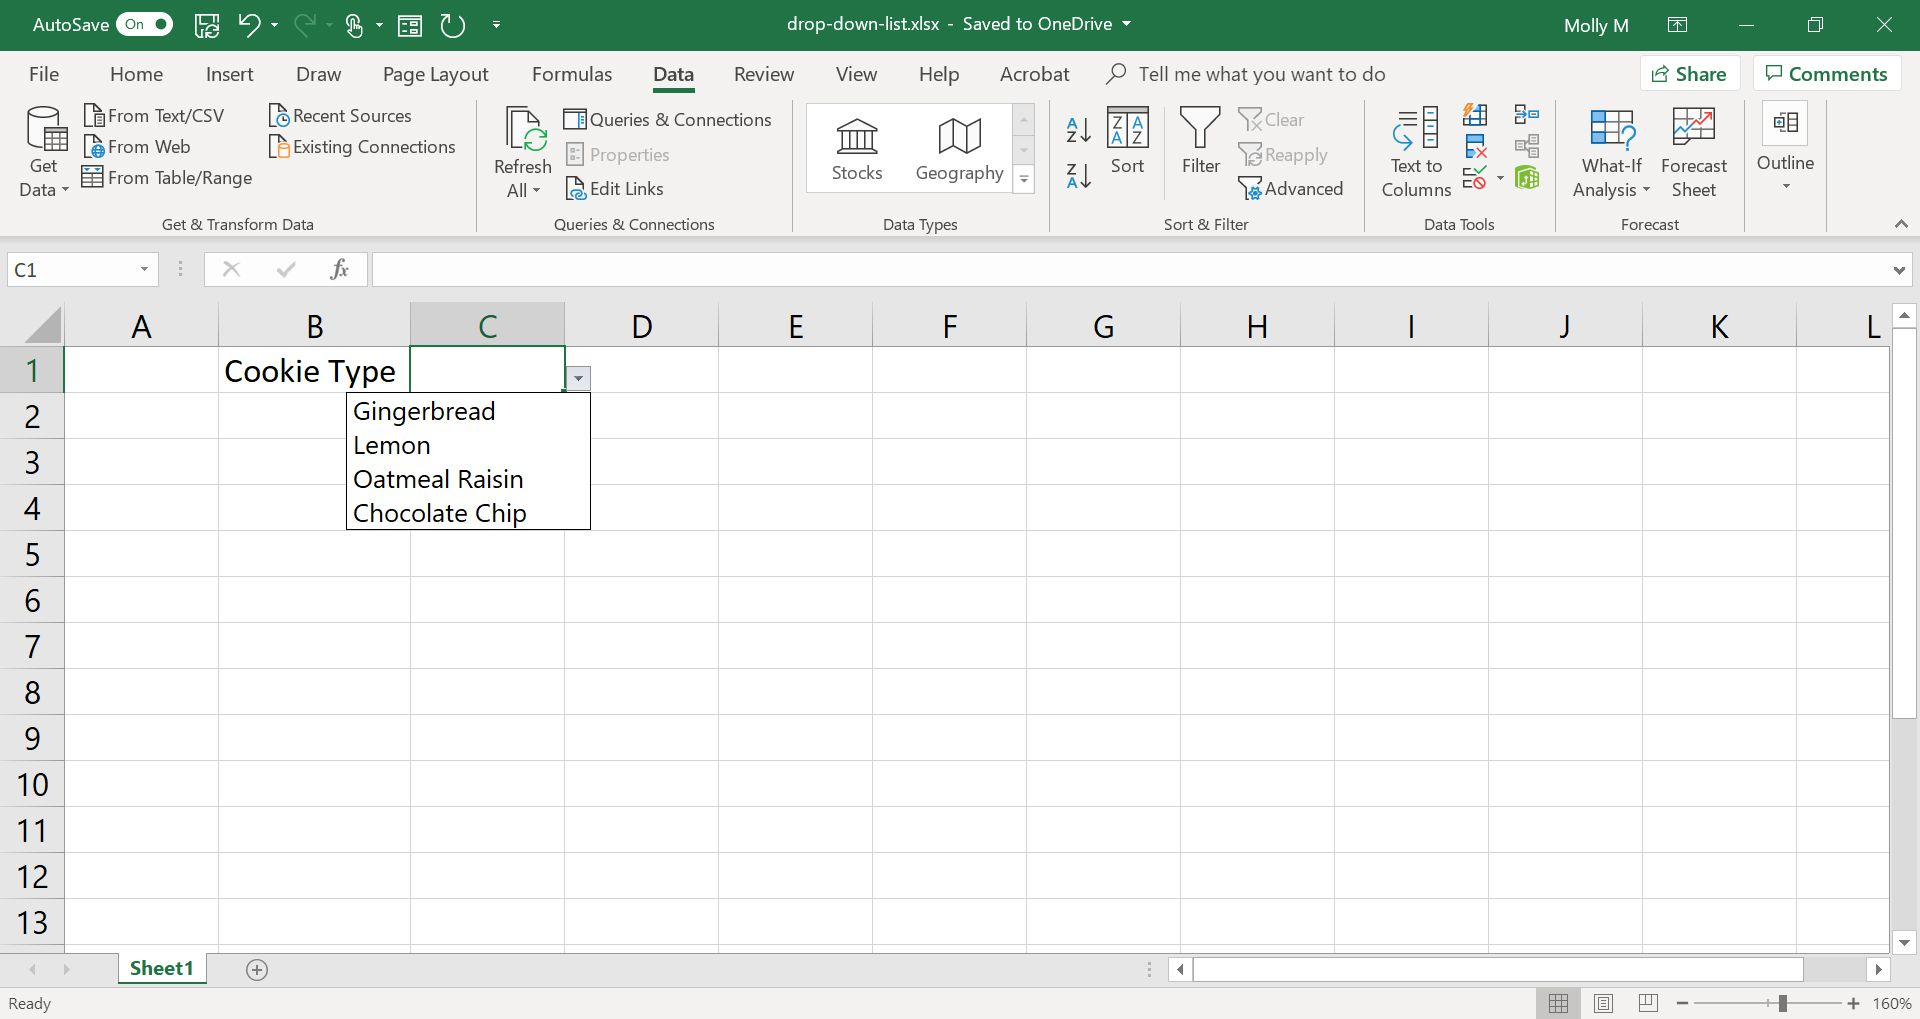 Excel sheet with a drop-down list of cookie types.